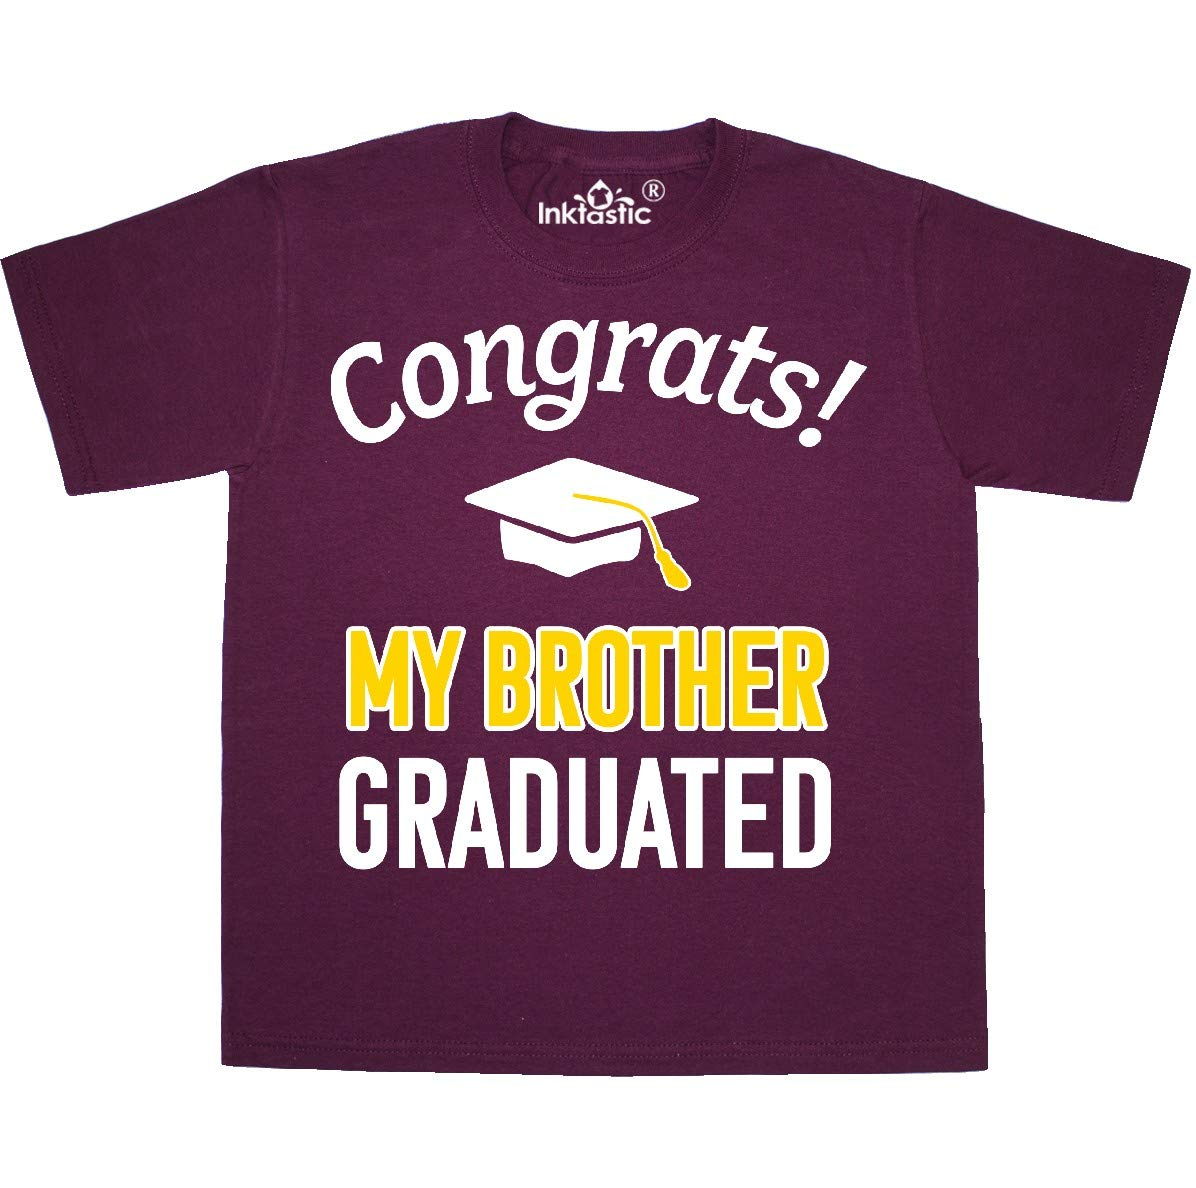 Congrats My Brother Graduated With Cap T Shirt 35dcd 6338